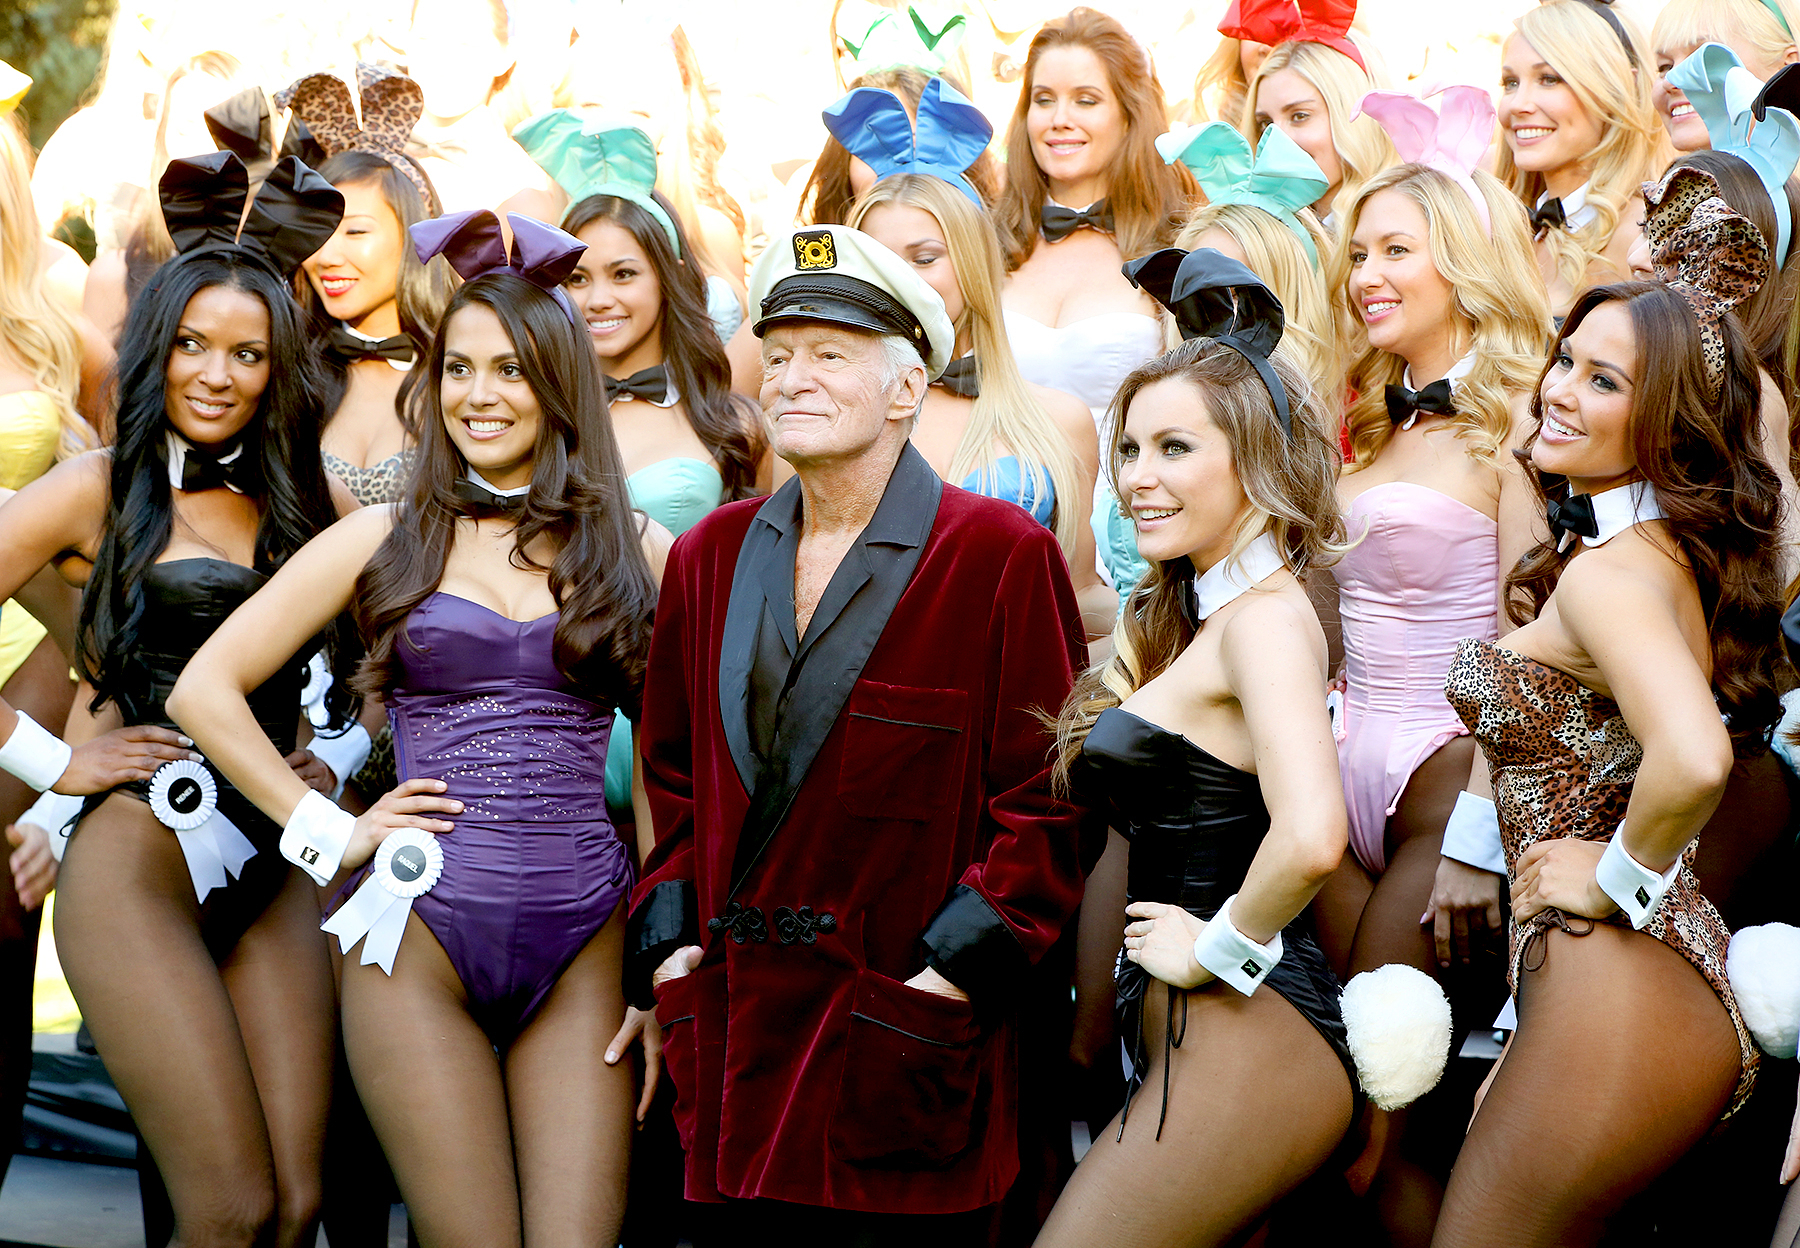 Hugh Hefner (C) poses with Playboy Bunnies, Playmate of the Year 2013 Raquel Pomplun (2nd L) and Miss December 2009 Crystal Hefner (2nd R) at Playboy's 60th Anniversary special event on January 16, 2014 in Los Angeles, California.